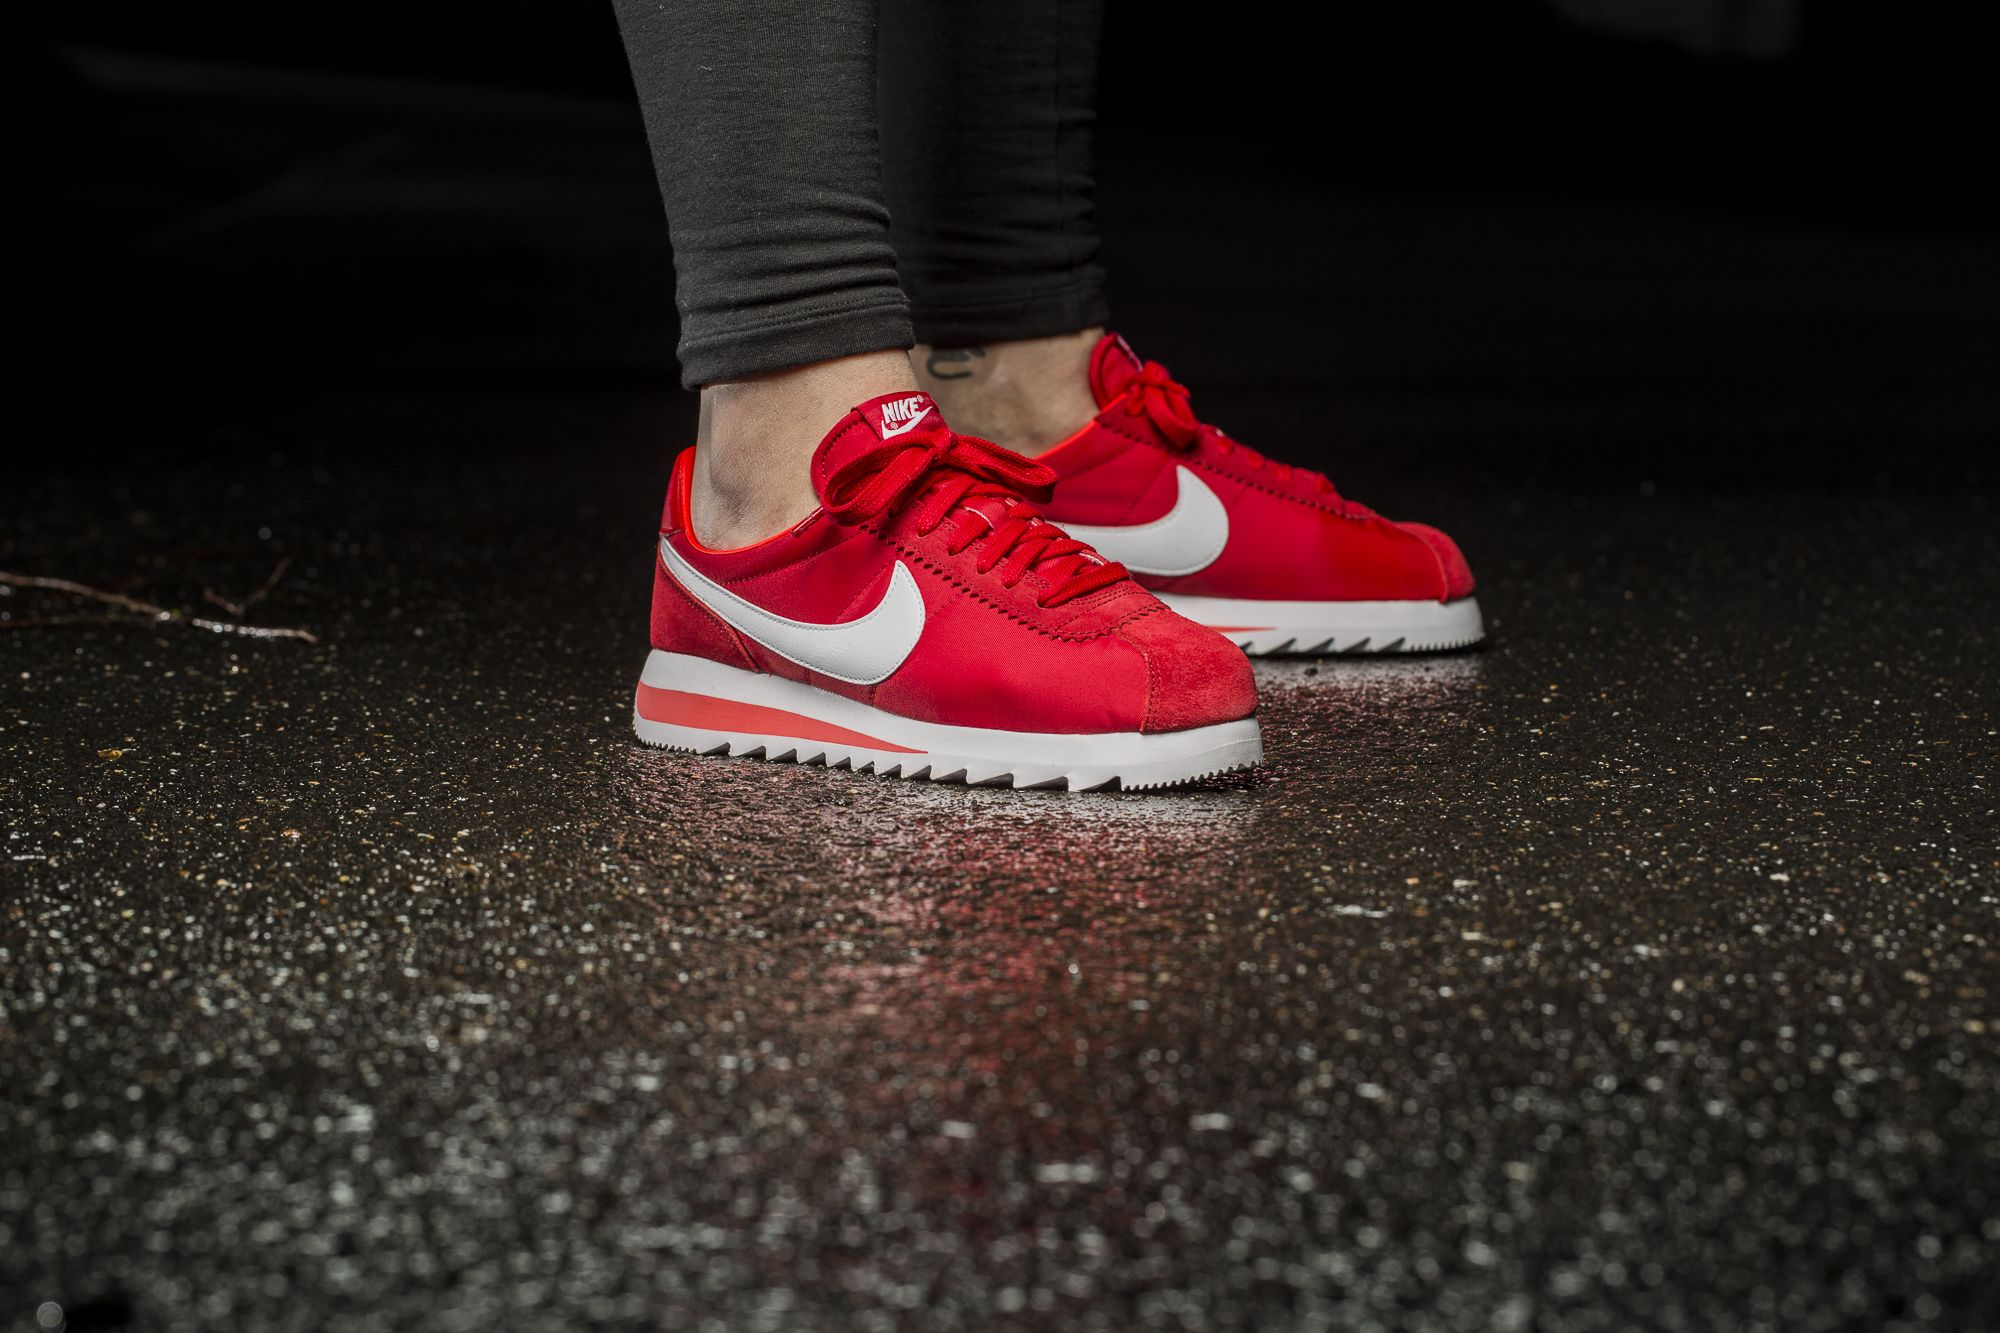 ***RELEASE REMINDER*** Girls, the Nike​ WMNS Classic Cortez Eric will be available at our shop tomorrow!  Release: 18.12.2015 | 9.00h AM CET | EU 36 - 41 | 95,-€